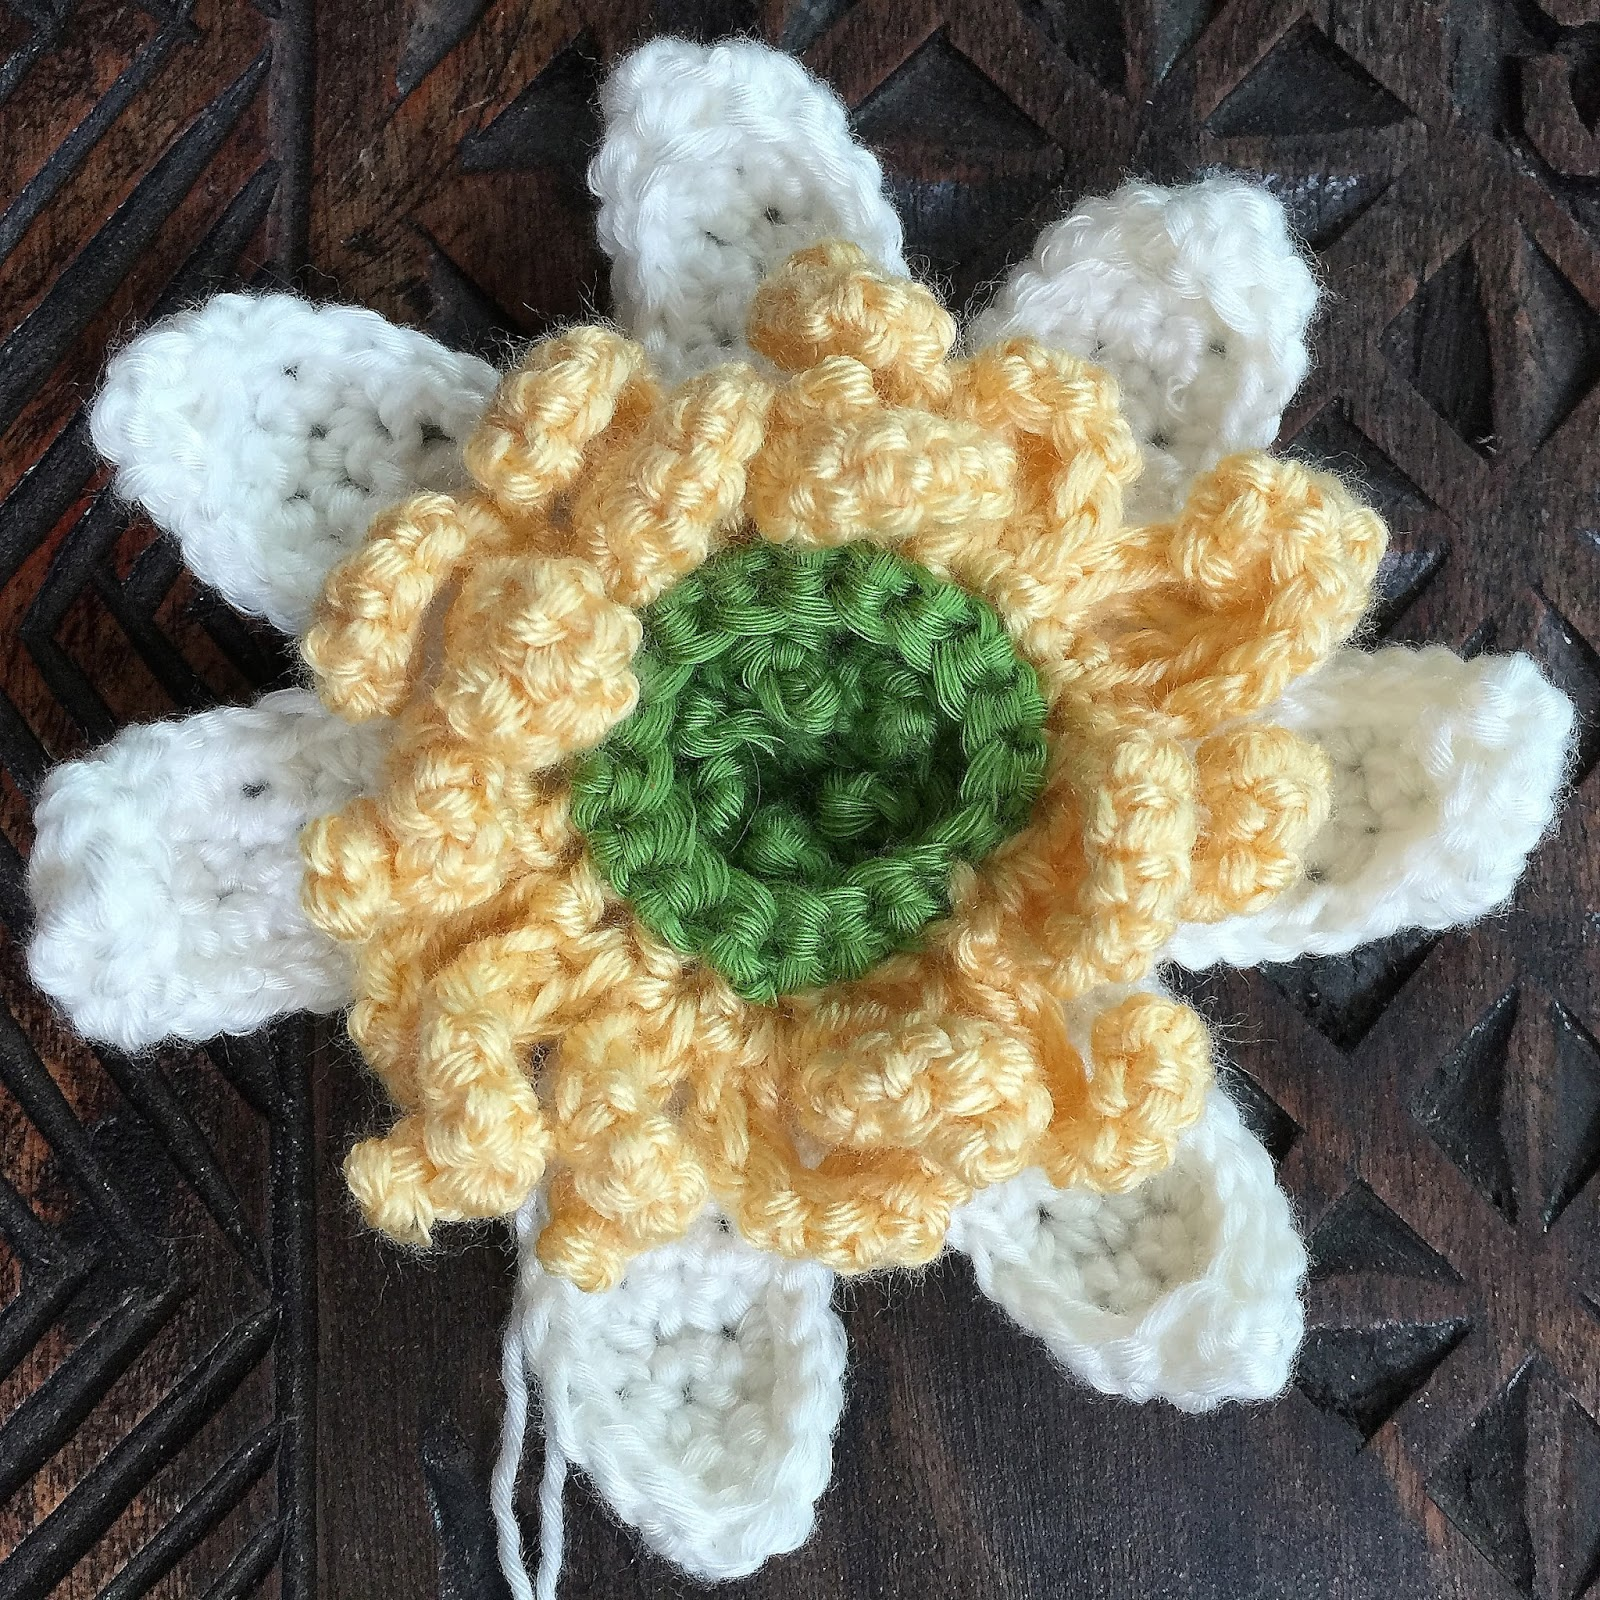 Crochet rockstar lotus crochet flower photo tutorial note i made mistake on the number of sc in mine so i had 7 instead of 6 do not repeat my mistake i was too lazy to frog my works lol izmirmasajfo Gallery